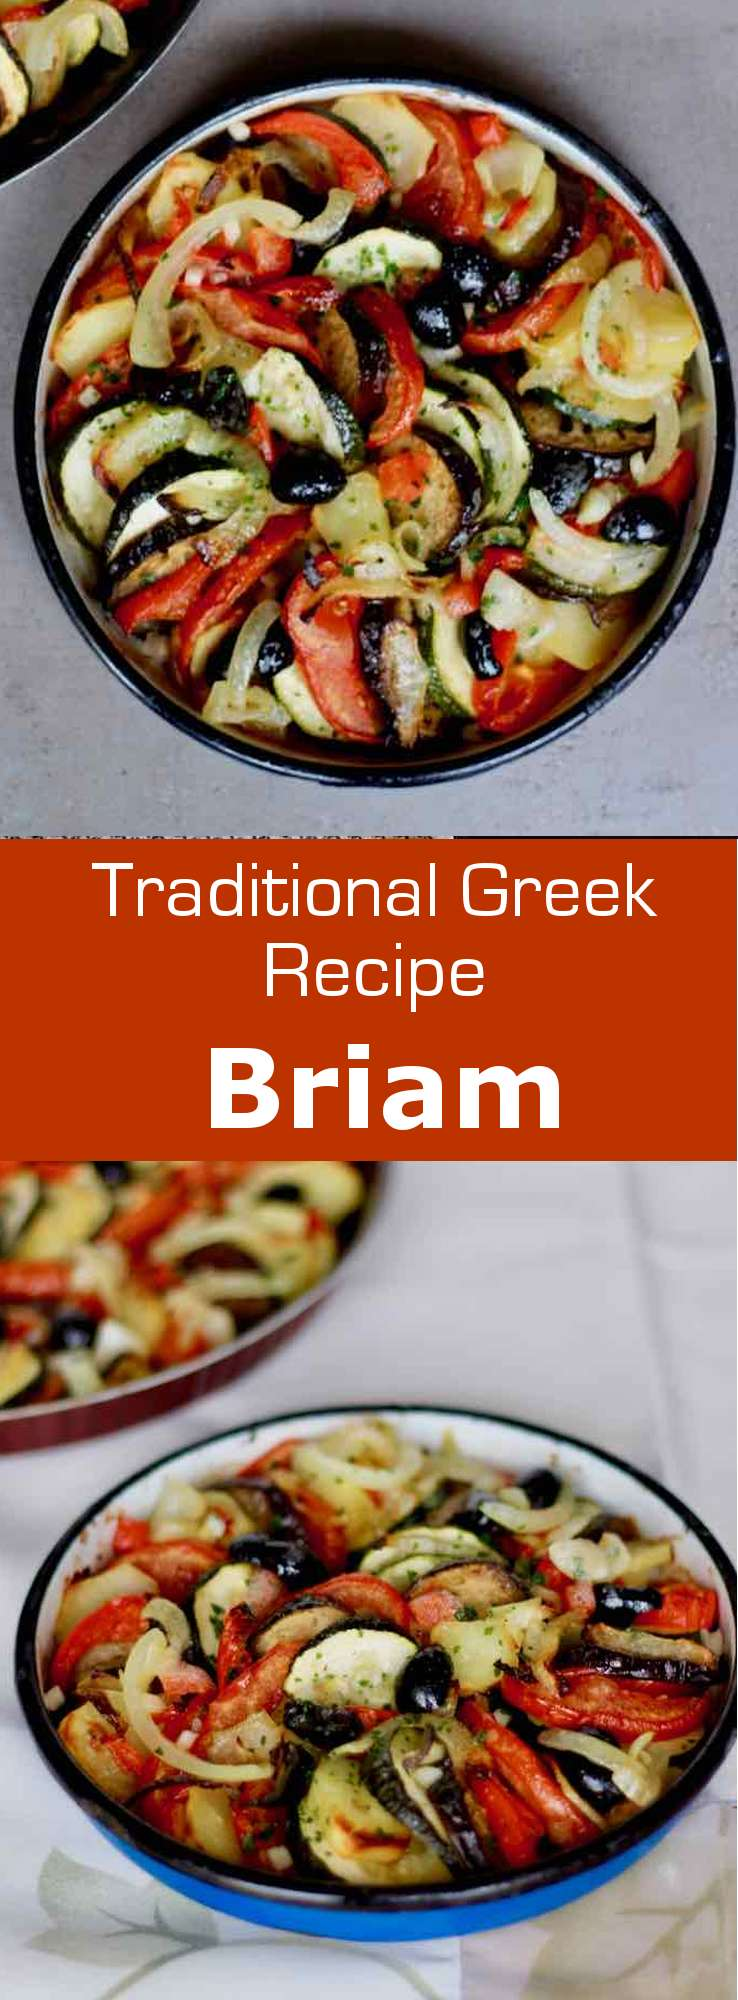 Briam is a traditional dish of Greek cuisine prepared with baked summer vegetables, that is close to the French ratatouille. #Greece #GreekCuisine #GreekFood #GreekRecipe #MediterraneanCuisine #WorldCuisine #196flavors